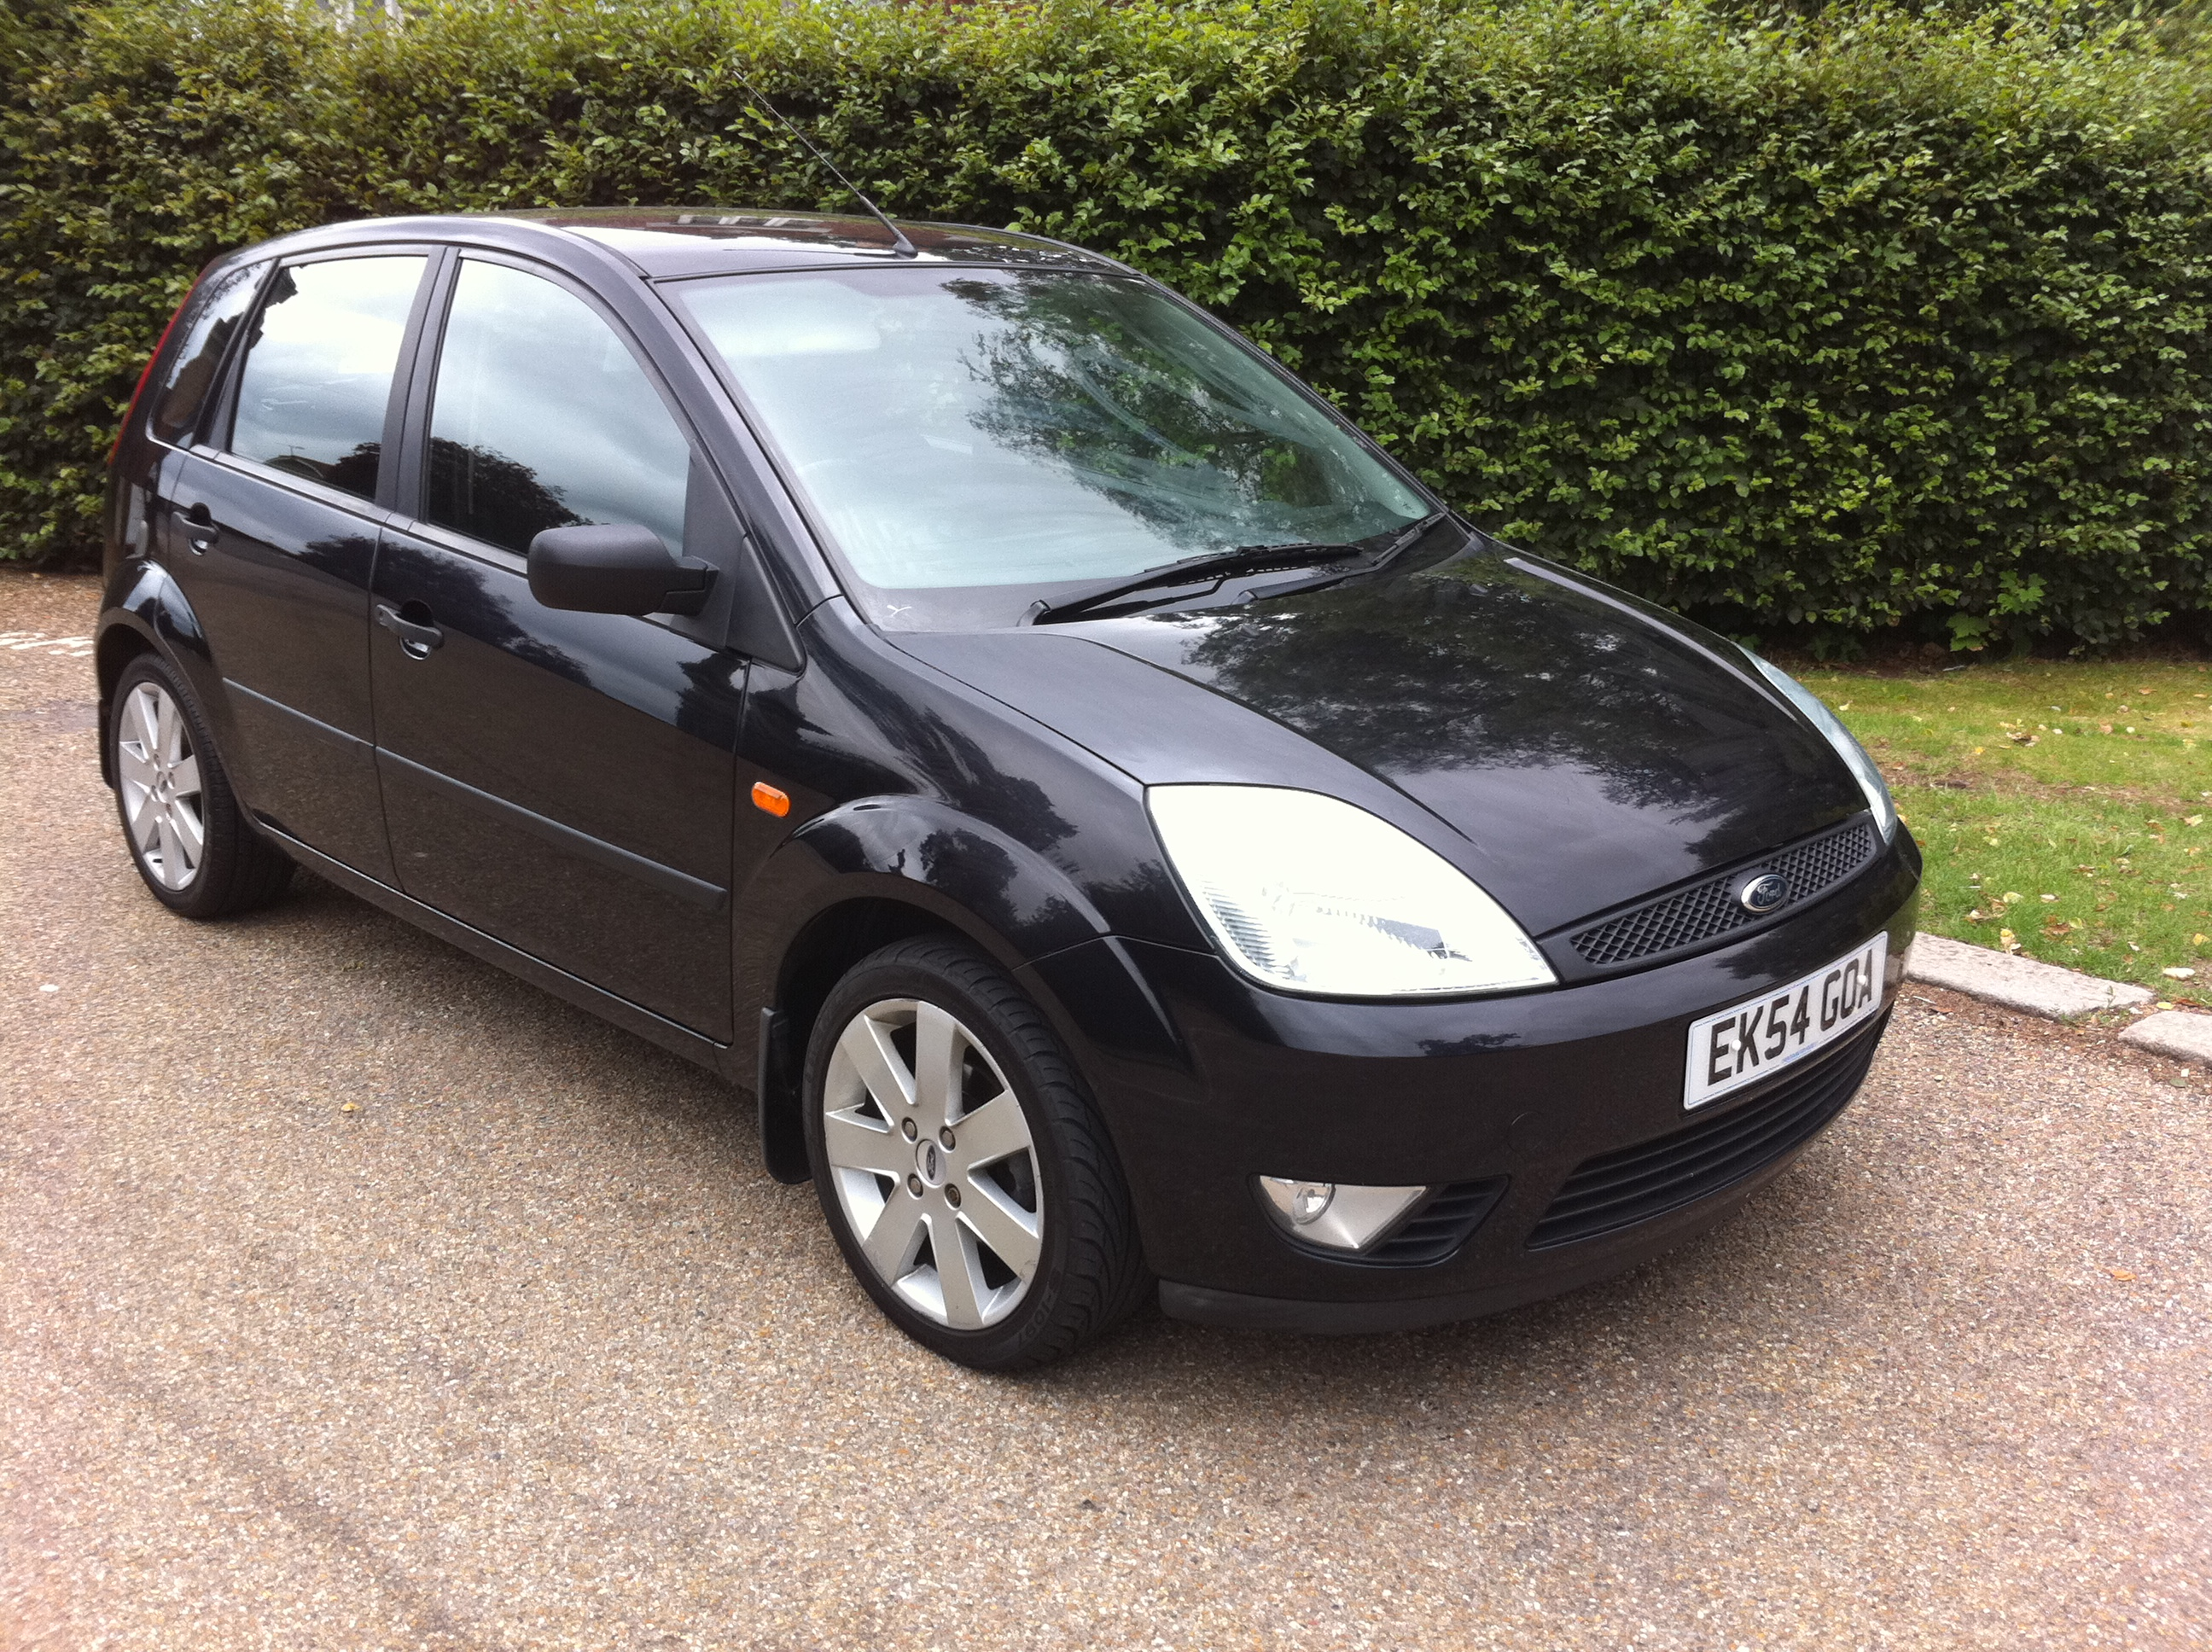 Ford Fiesta 1.4 2004 photo - 10